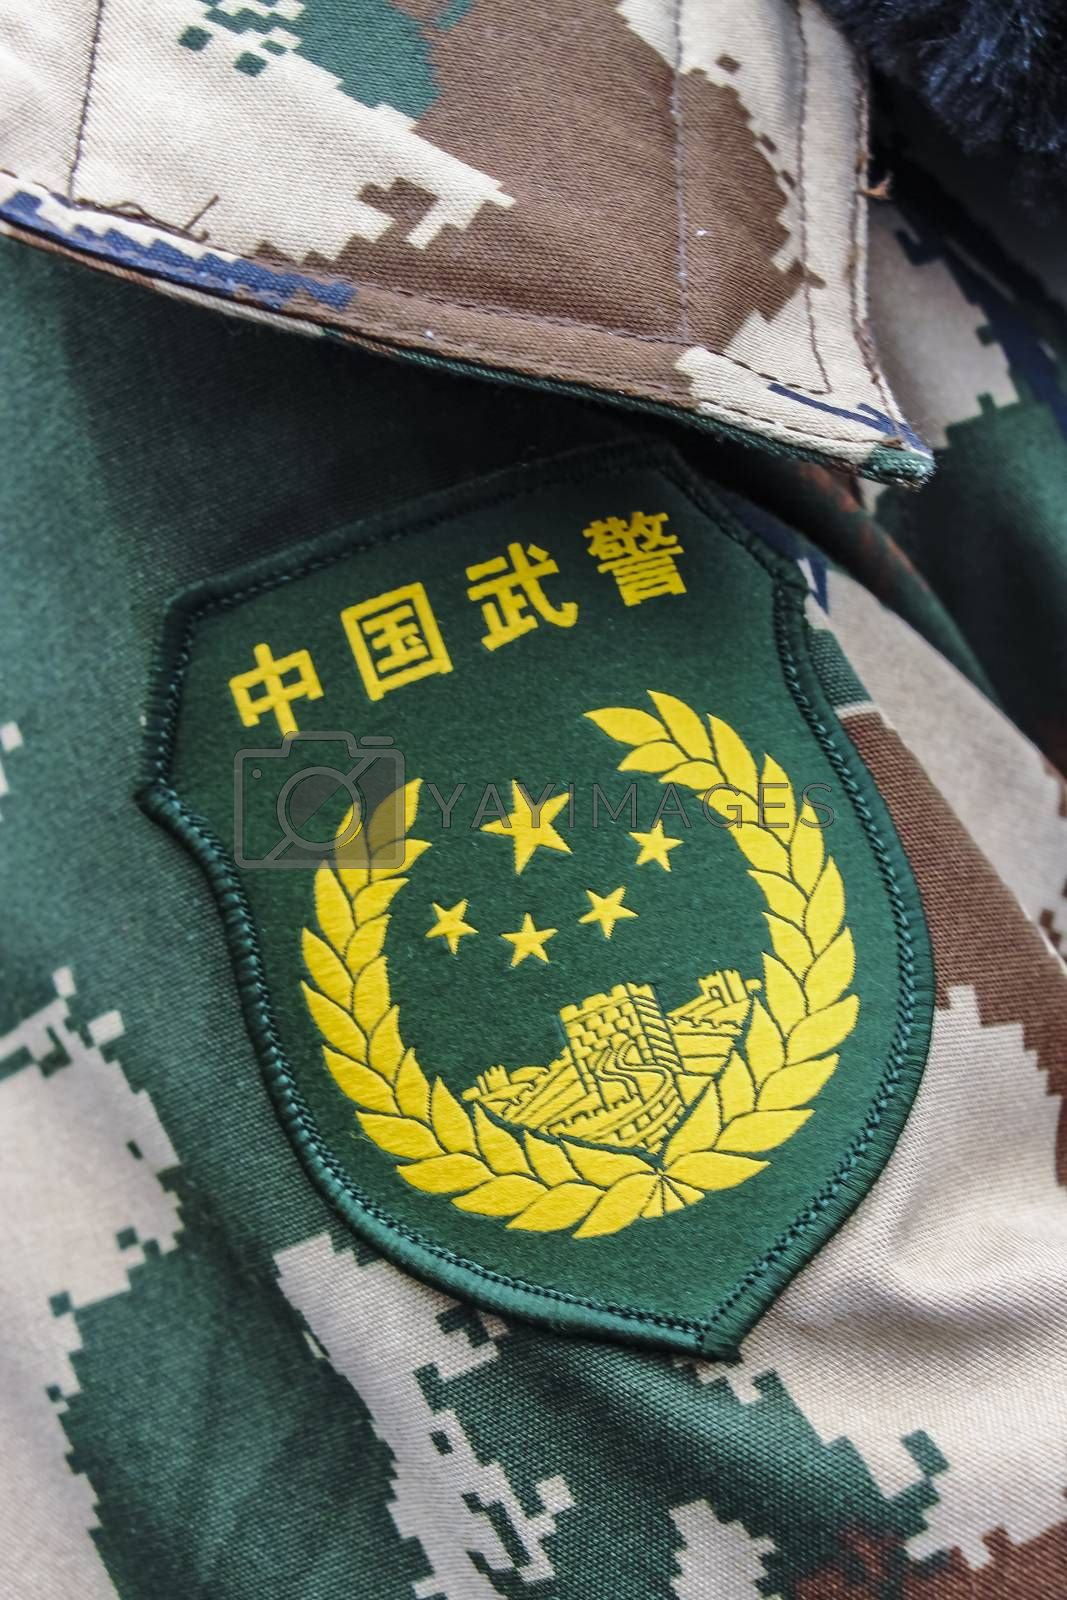 Emblem of the Chinese People's Armed Police Force over camouflage army fatigues